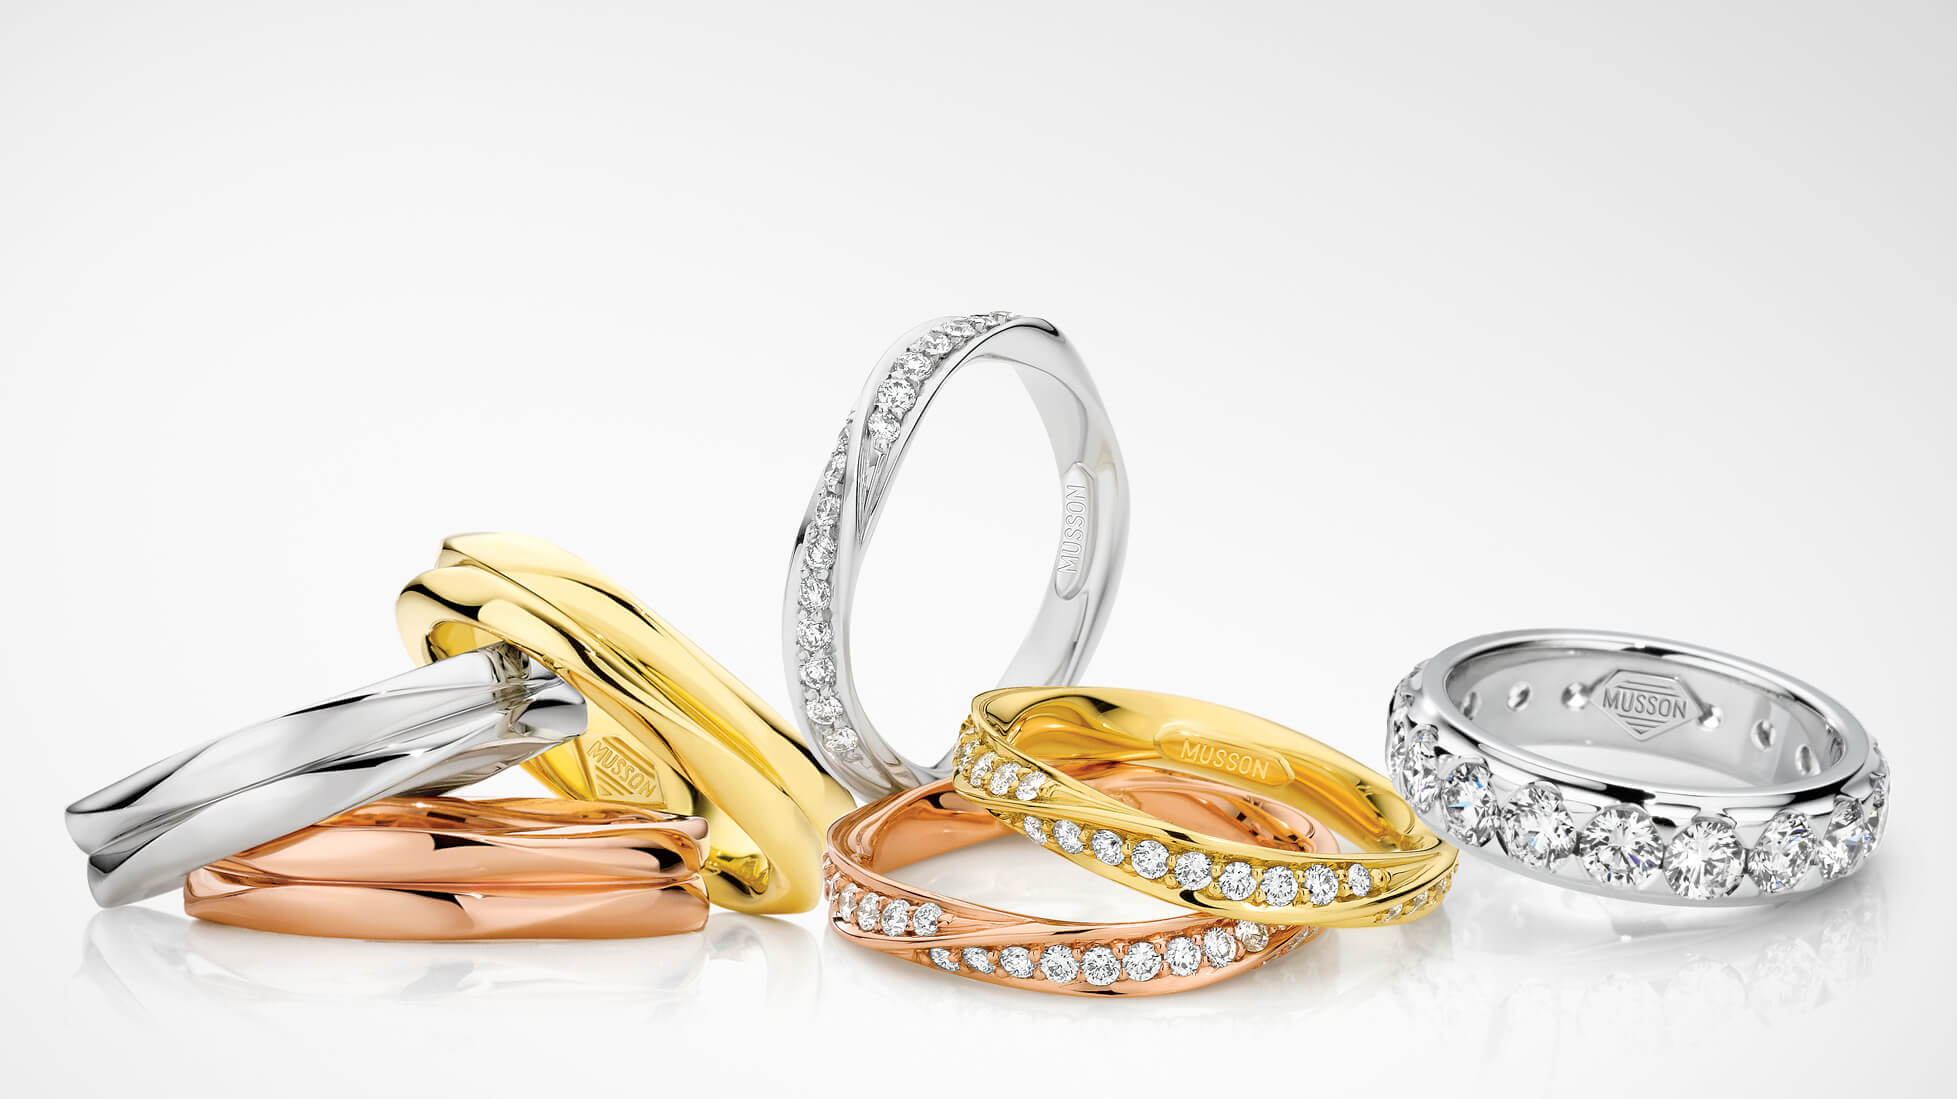 MUSSON069_1468x824PX_WEDDING_BANDS_LRES